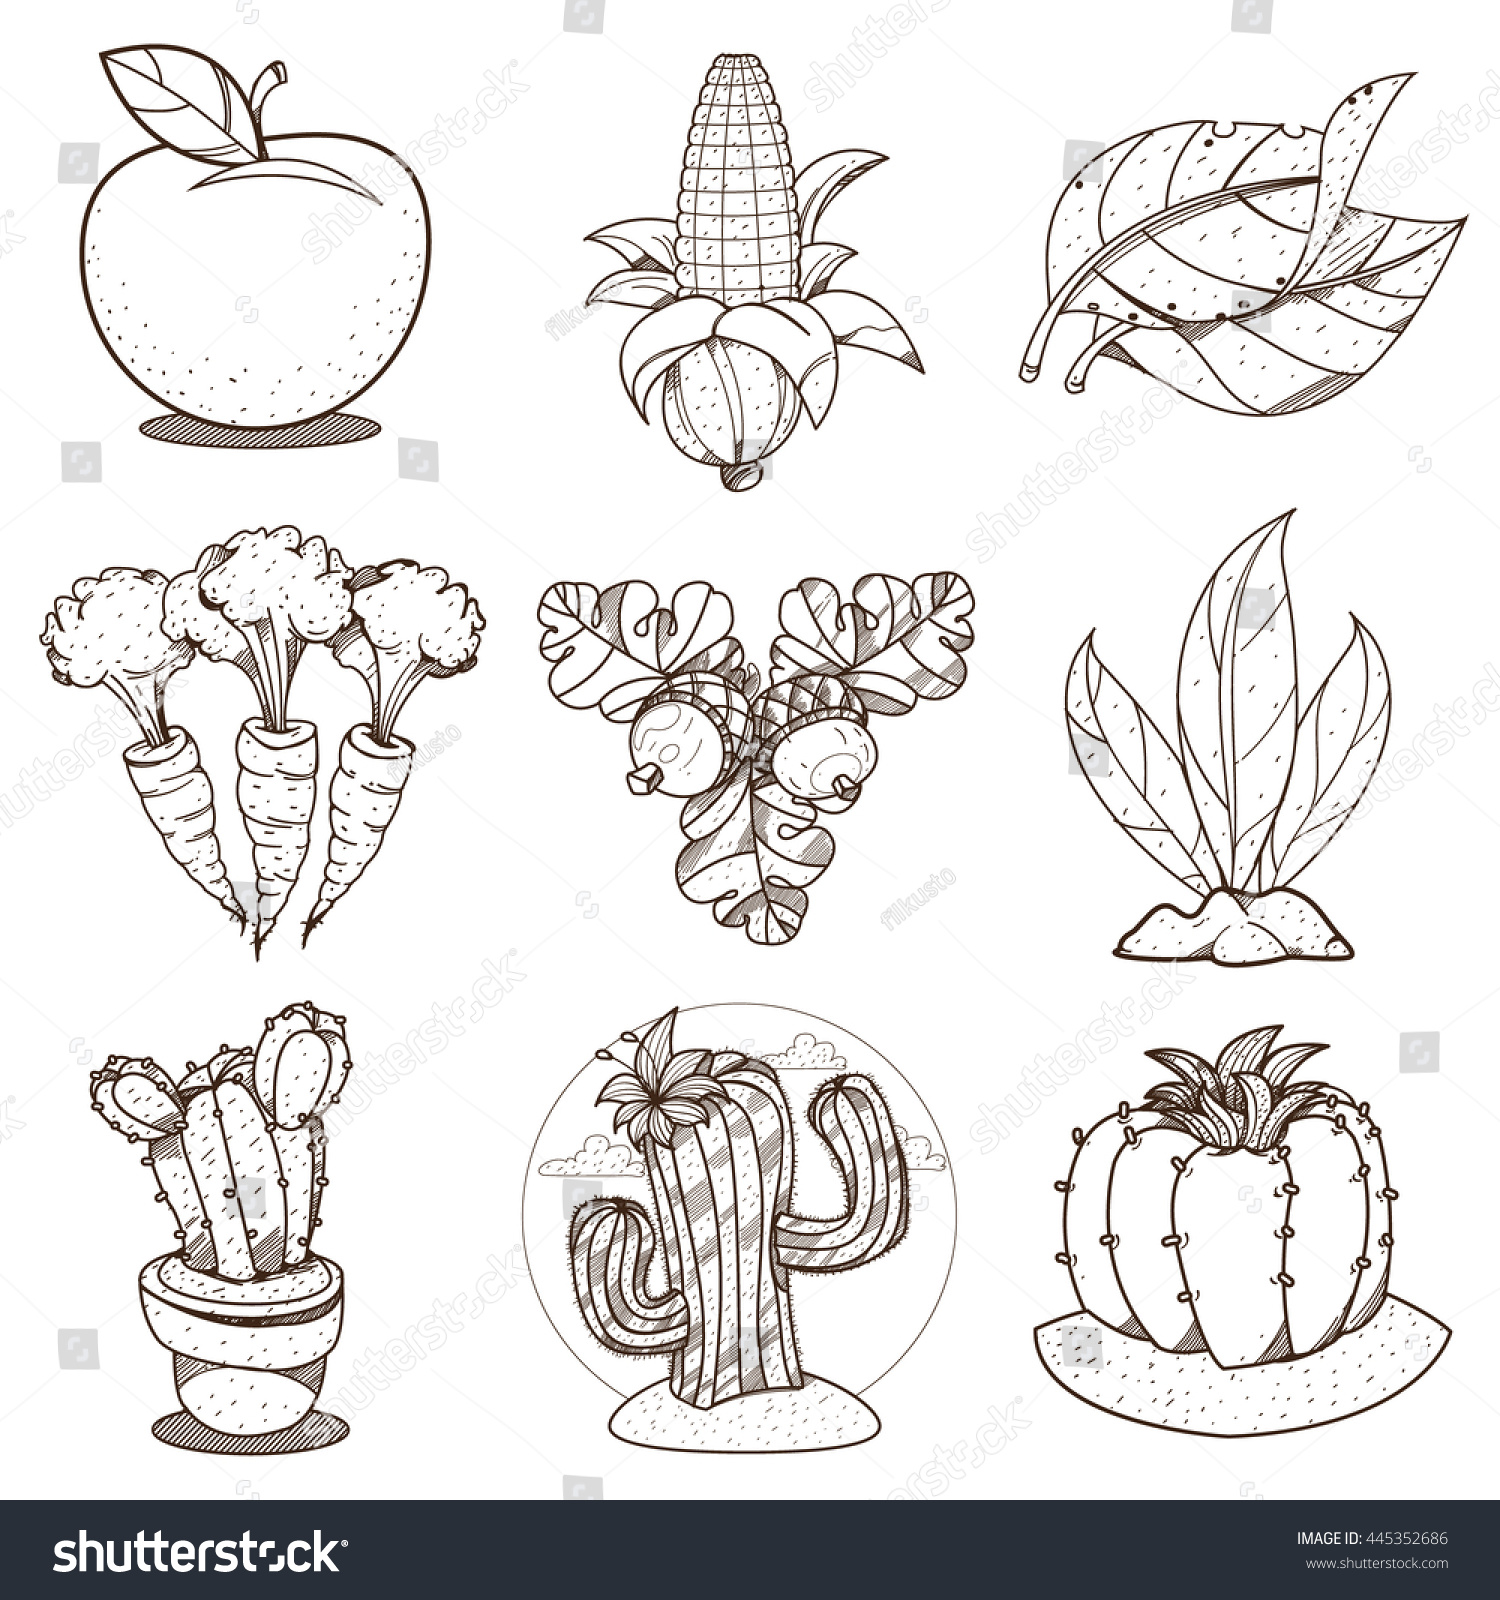 outline drawing coloring on farming apple stock vector 445352686